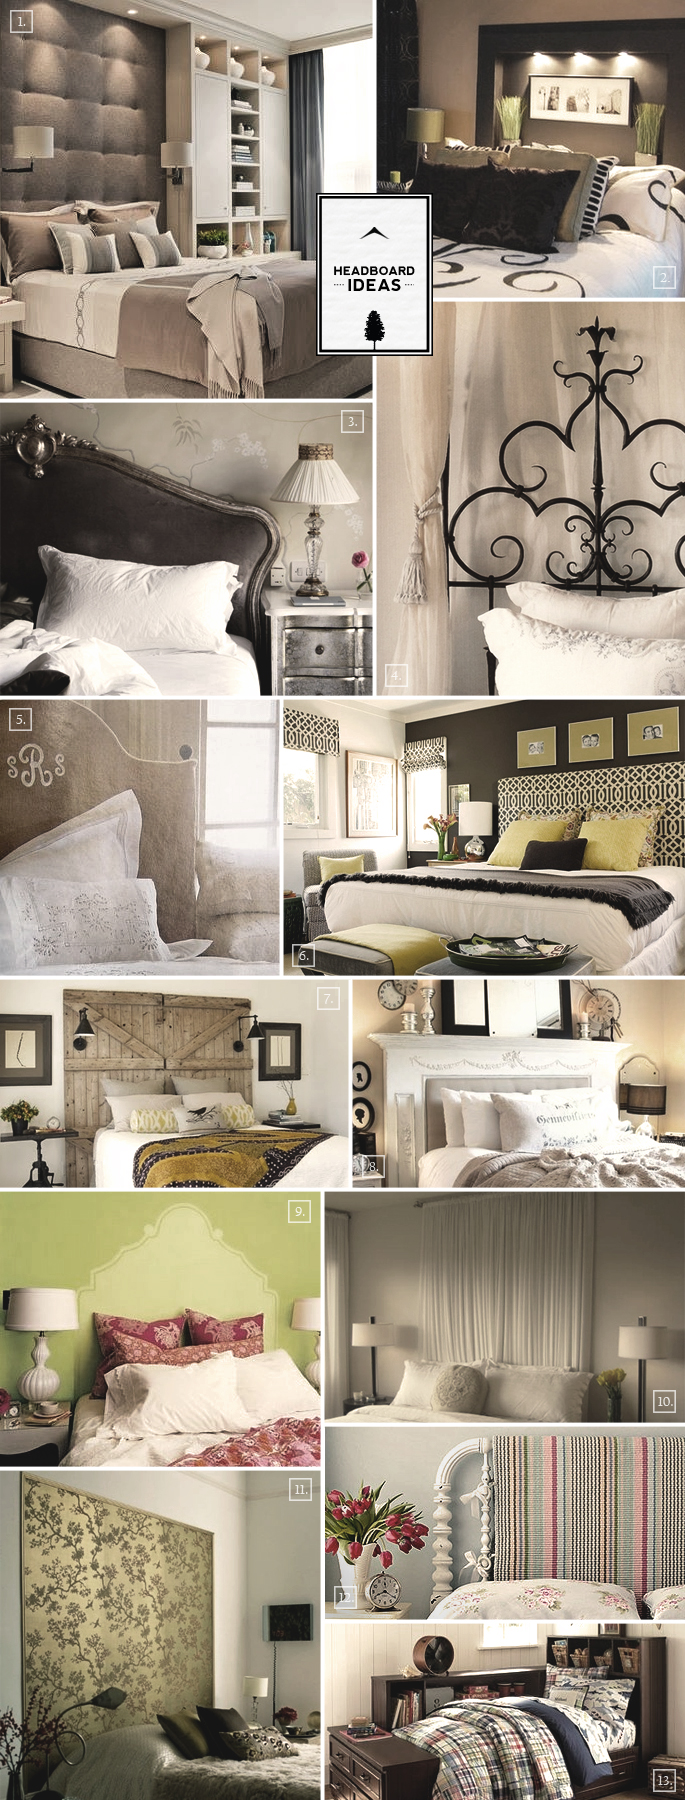 Headboard Design Ideas From Monograms To Fireplace